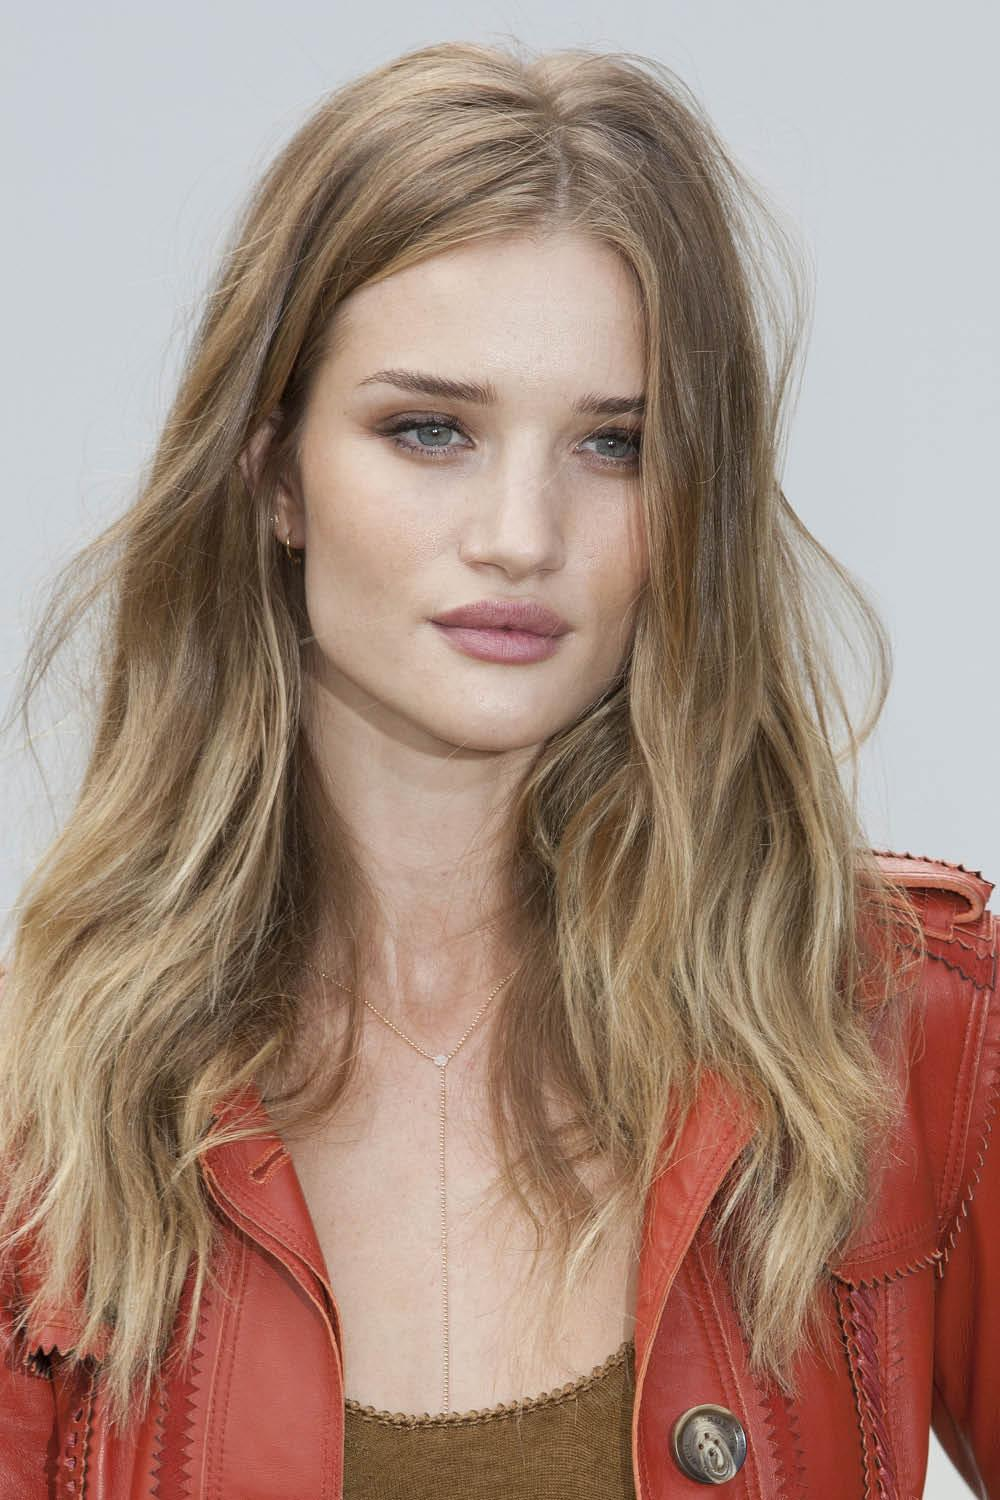 mechas californianas rosie huntington. Mechas californianas para rubias